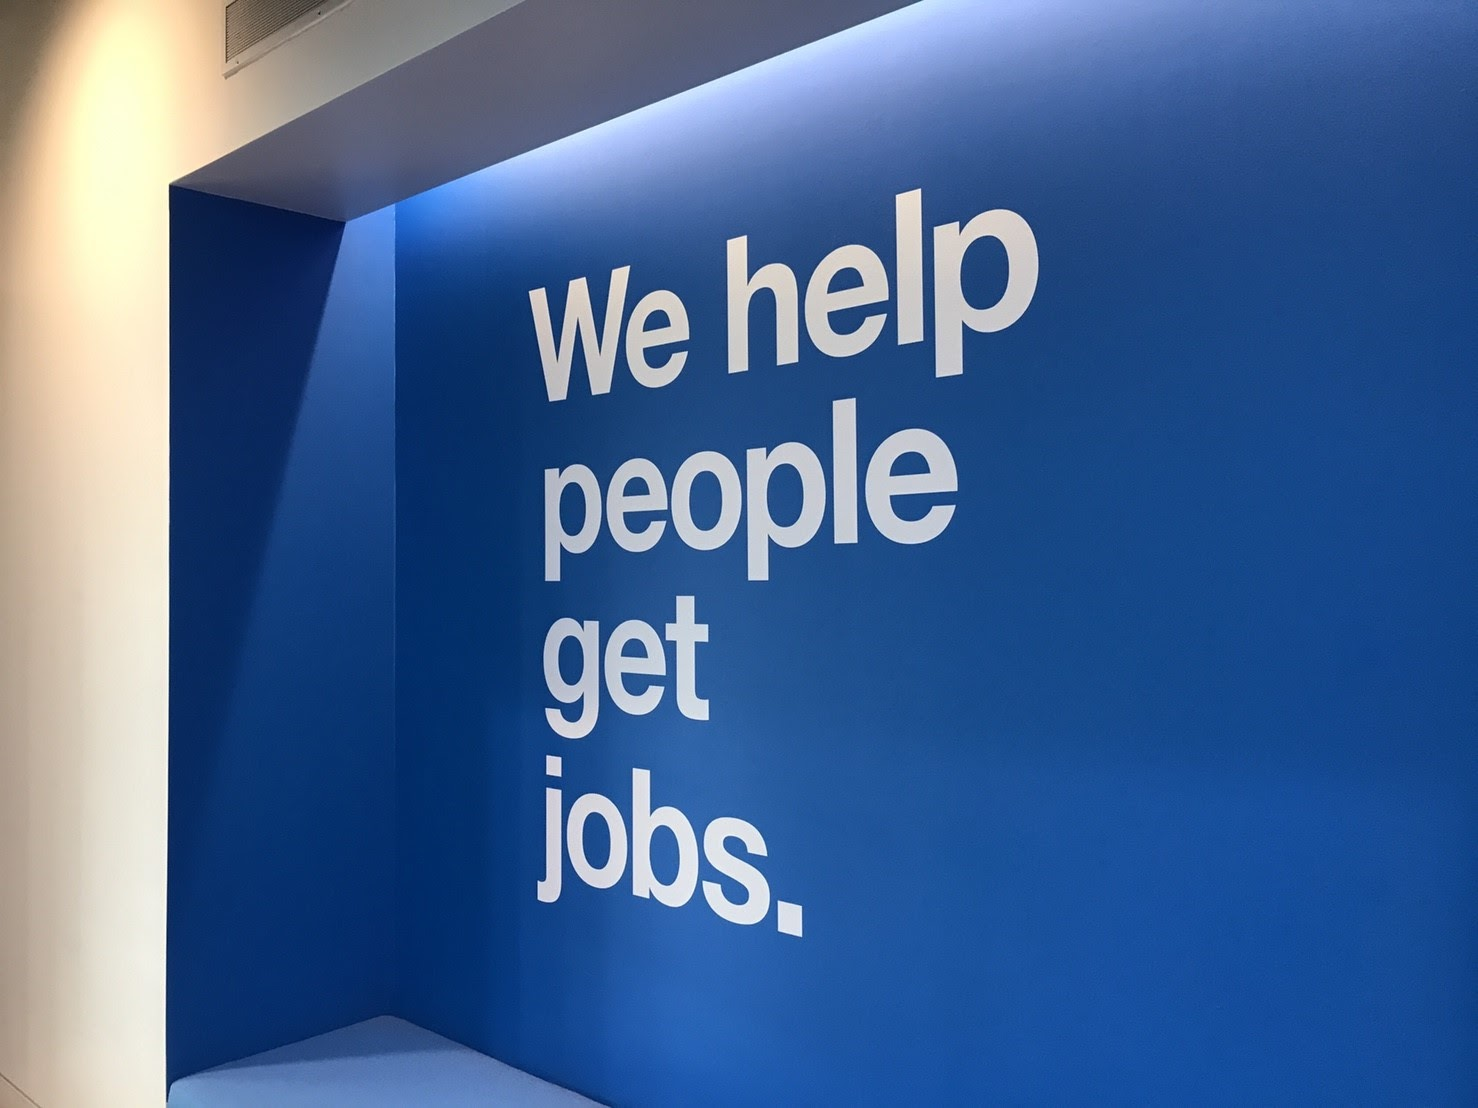 we help people get jobs.